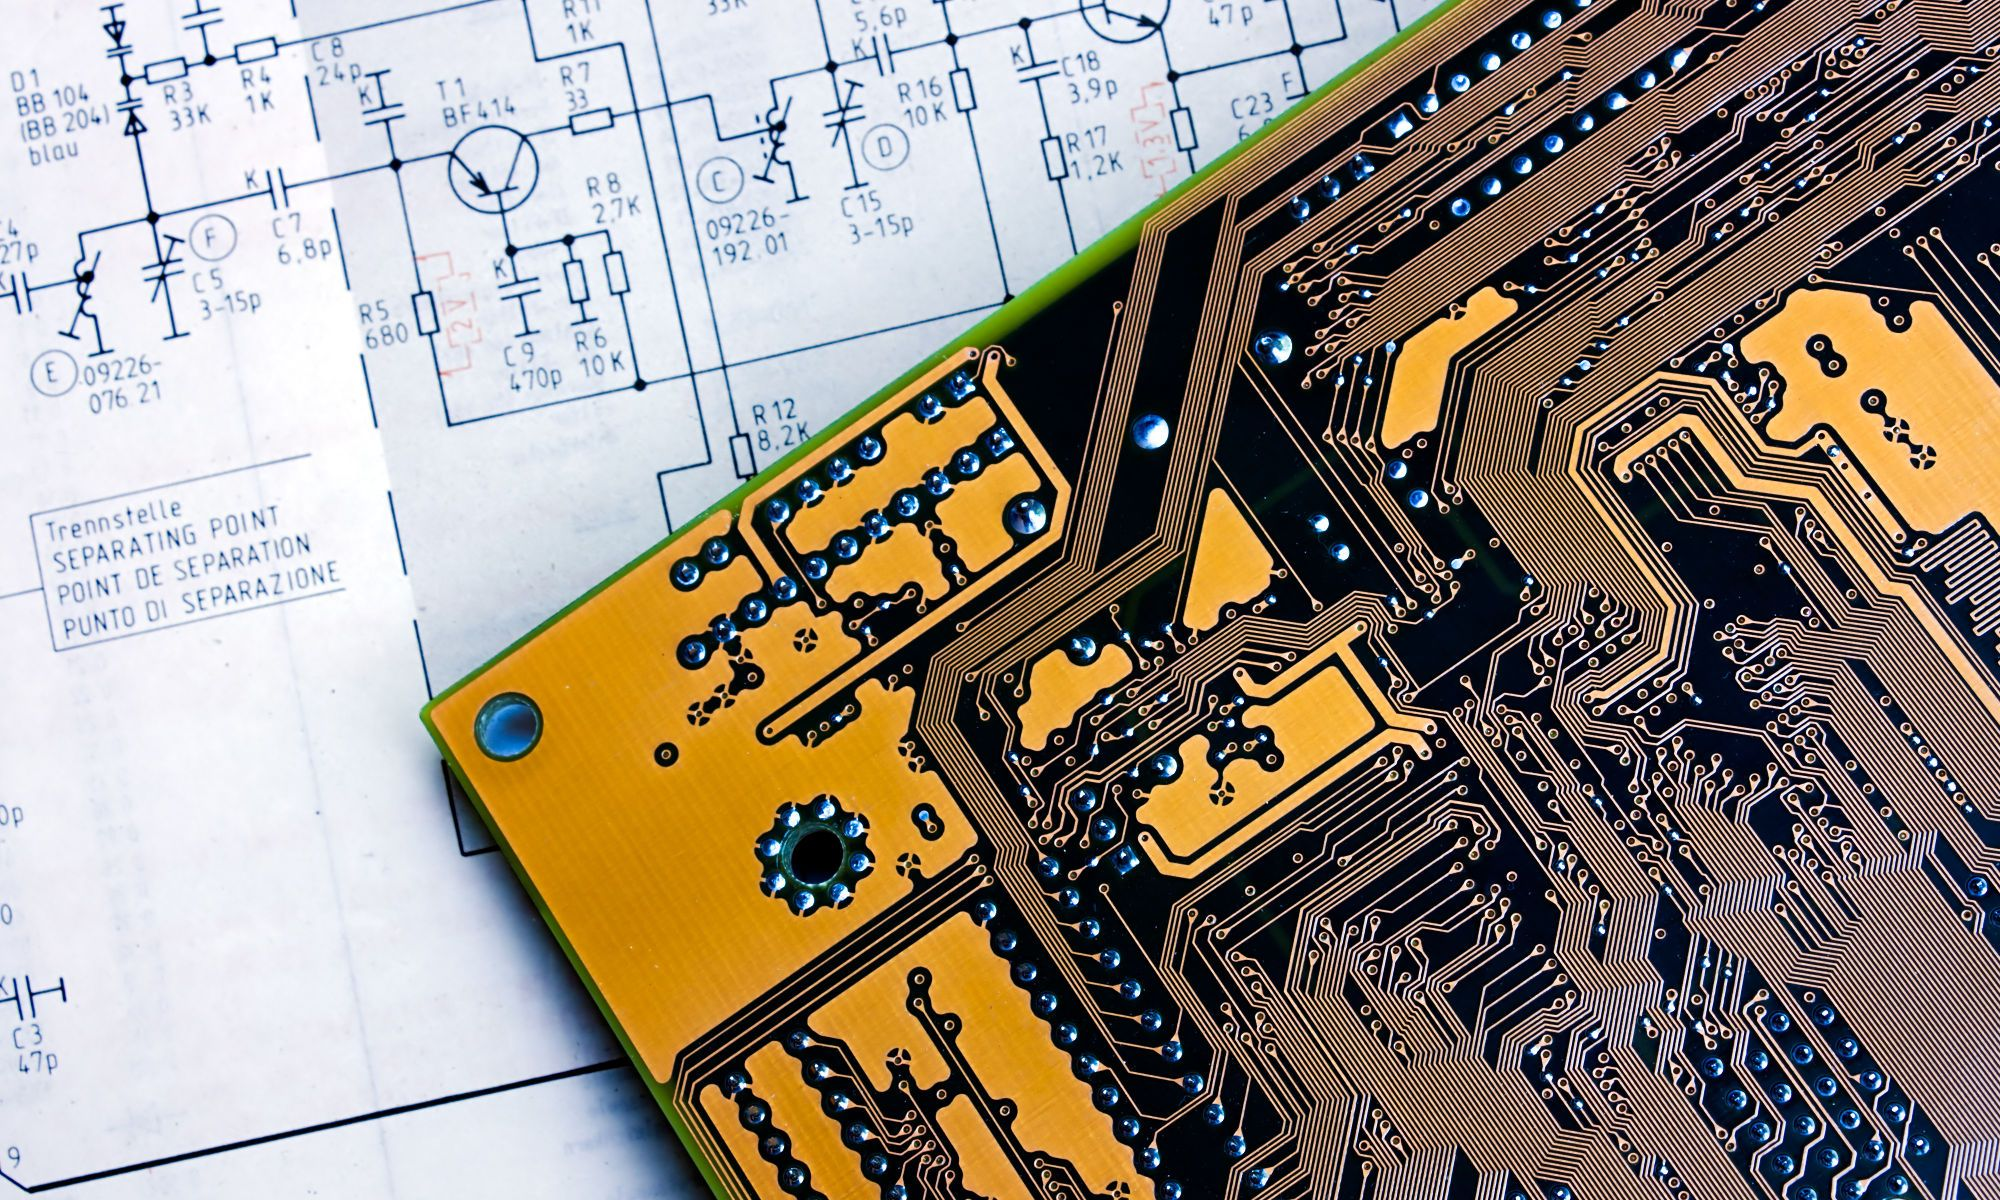 photo of schematic and bare PCB